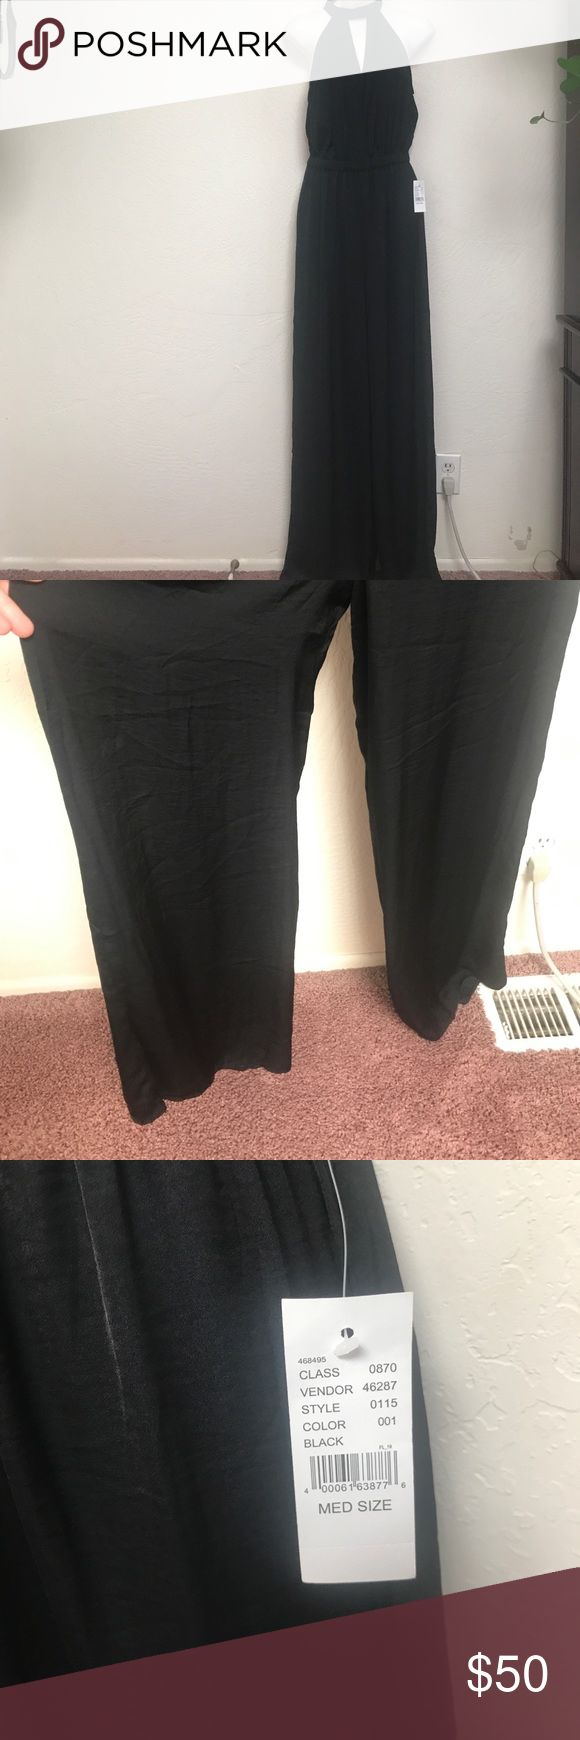 NWT Kendall & Kylie silky wide leg jumper Brand new from PAC sun I paid $75 Kendall & Kylie Pants Jumpsuits & Rompers